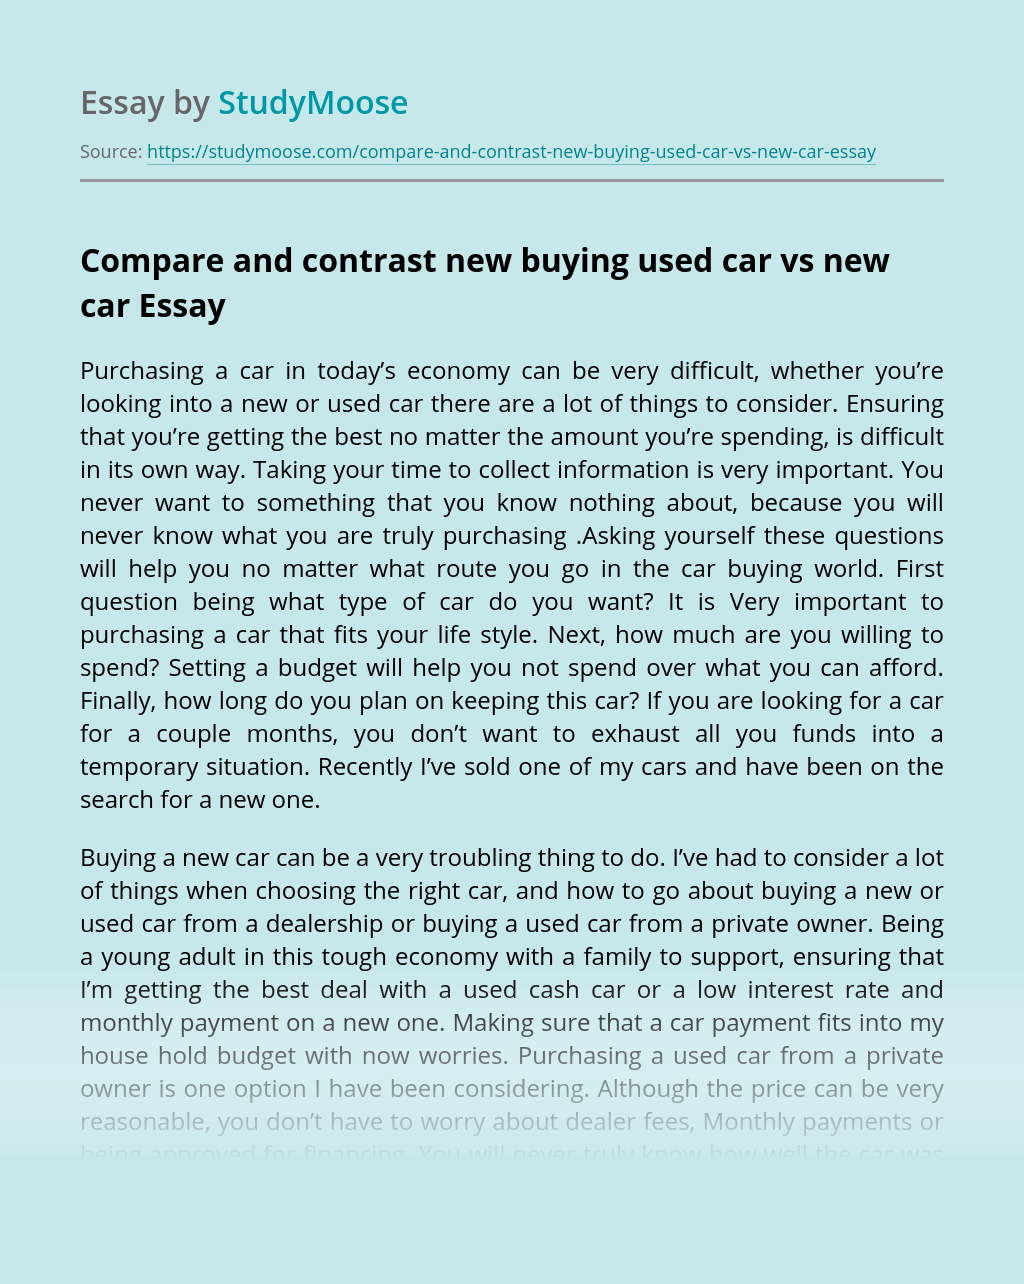 Compare and contrast new buying used car vs new car